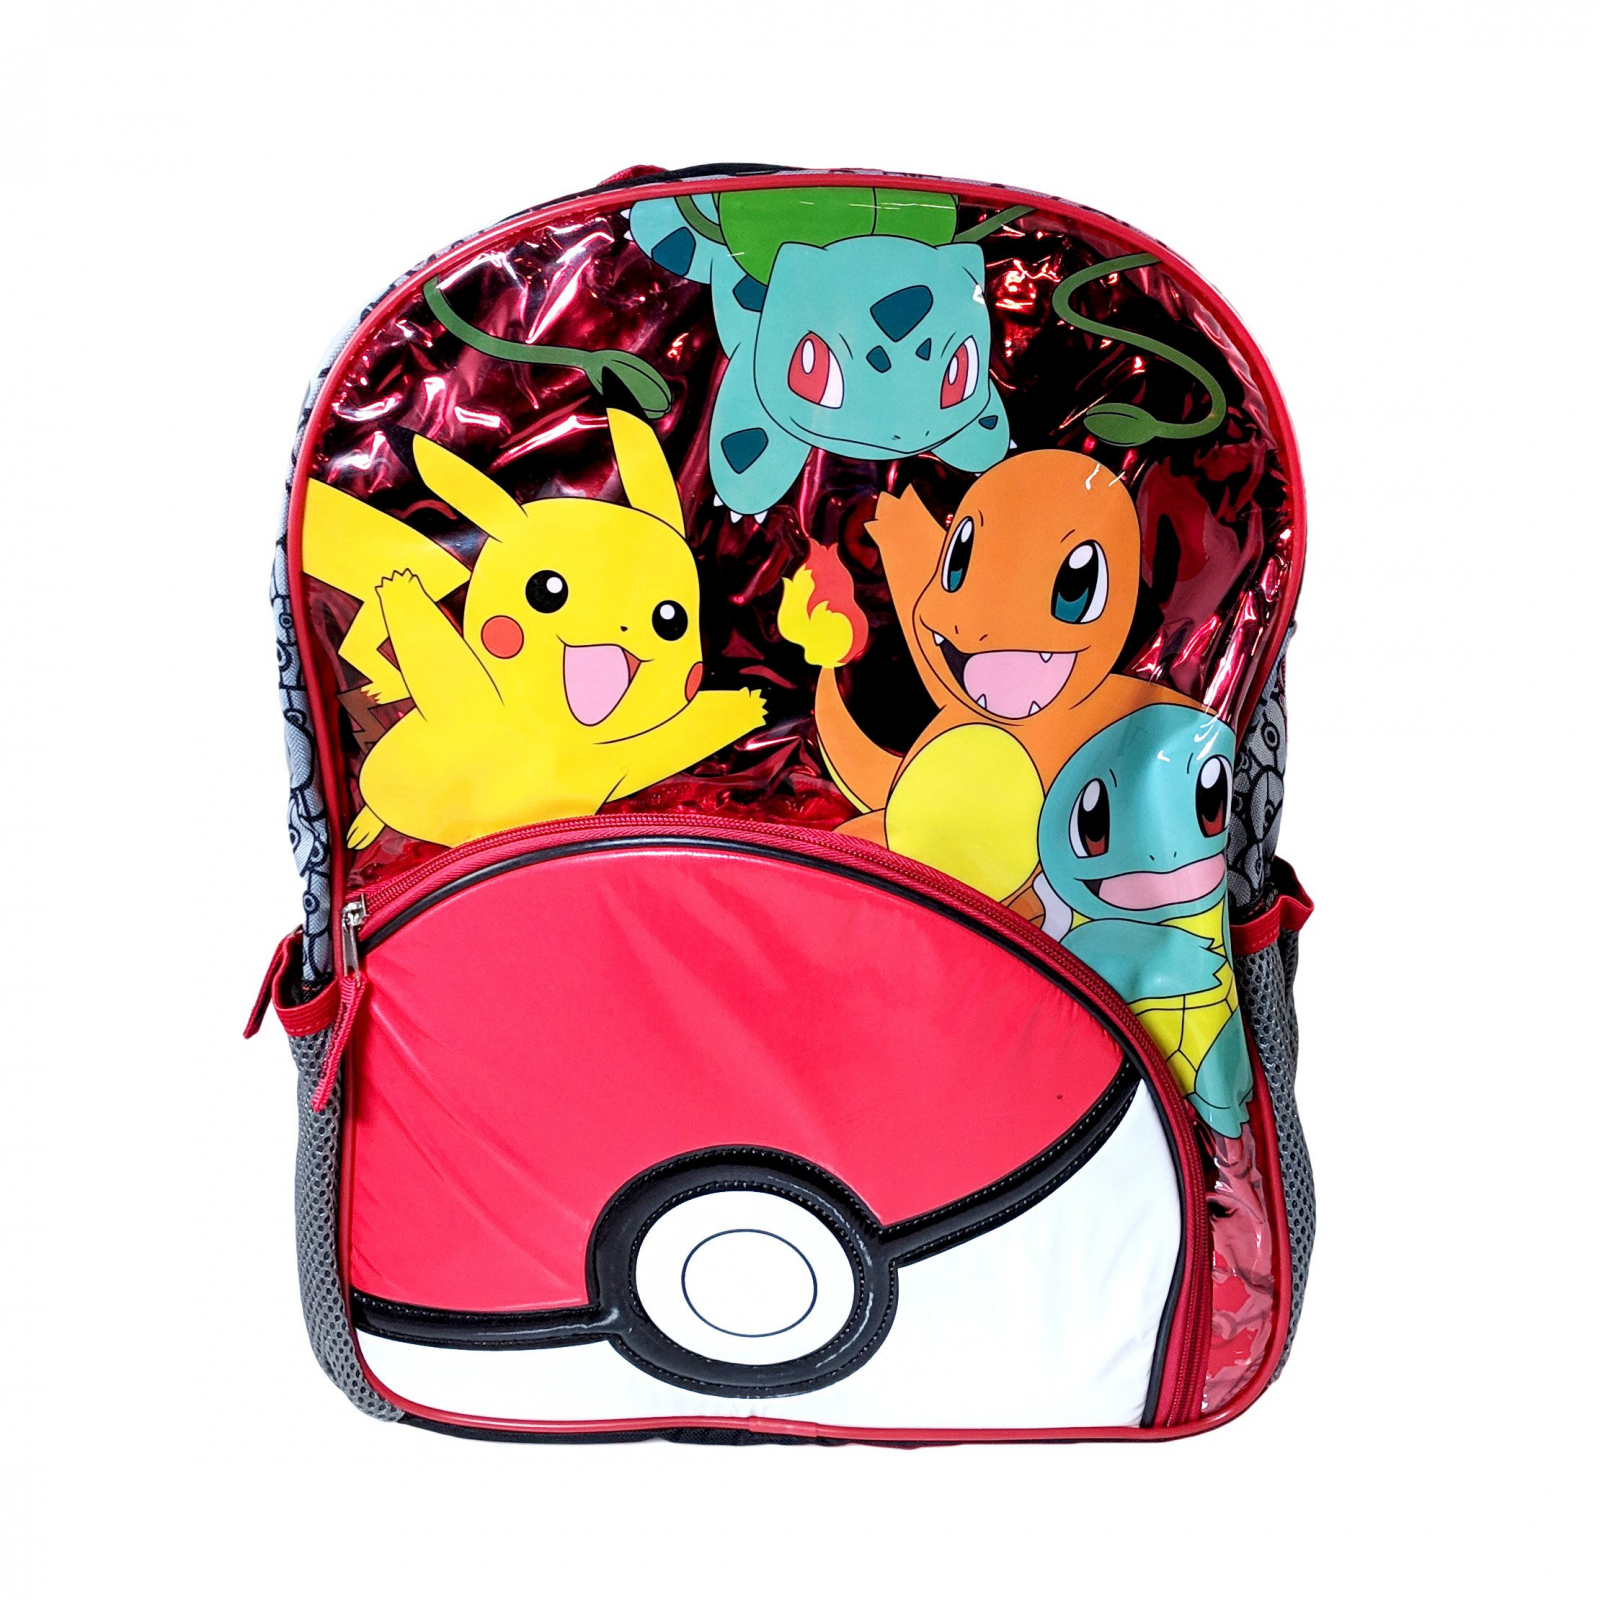 Nintendo Pokemon Kids School Backpack Mesh Water Bottle Pockets Travel Bag